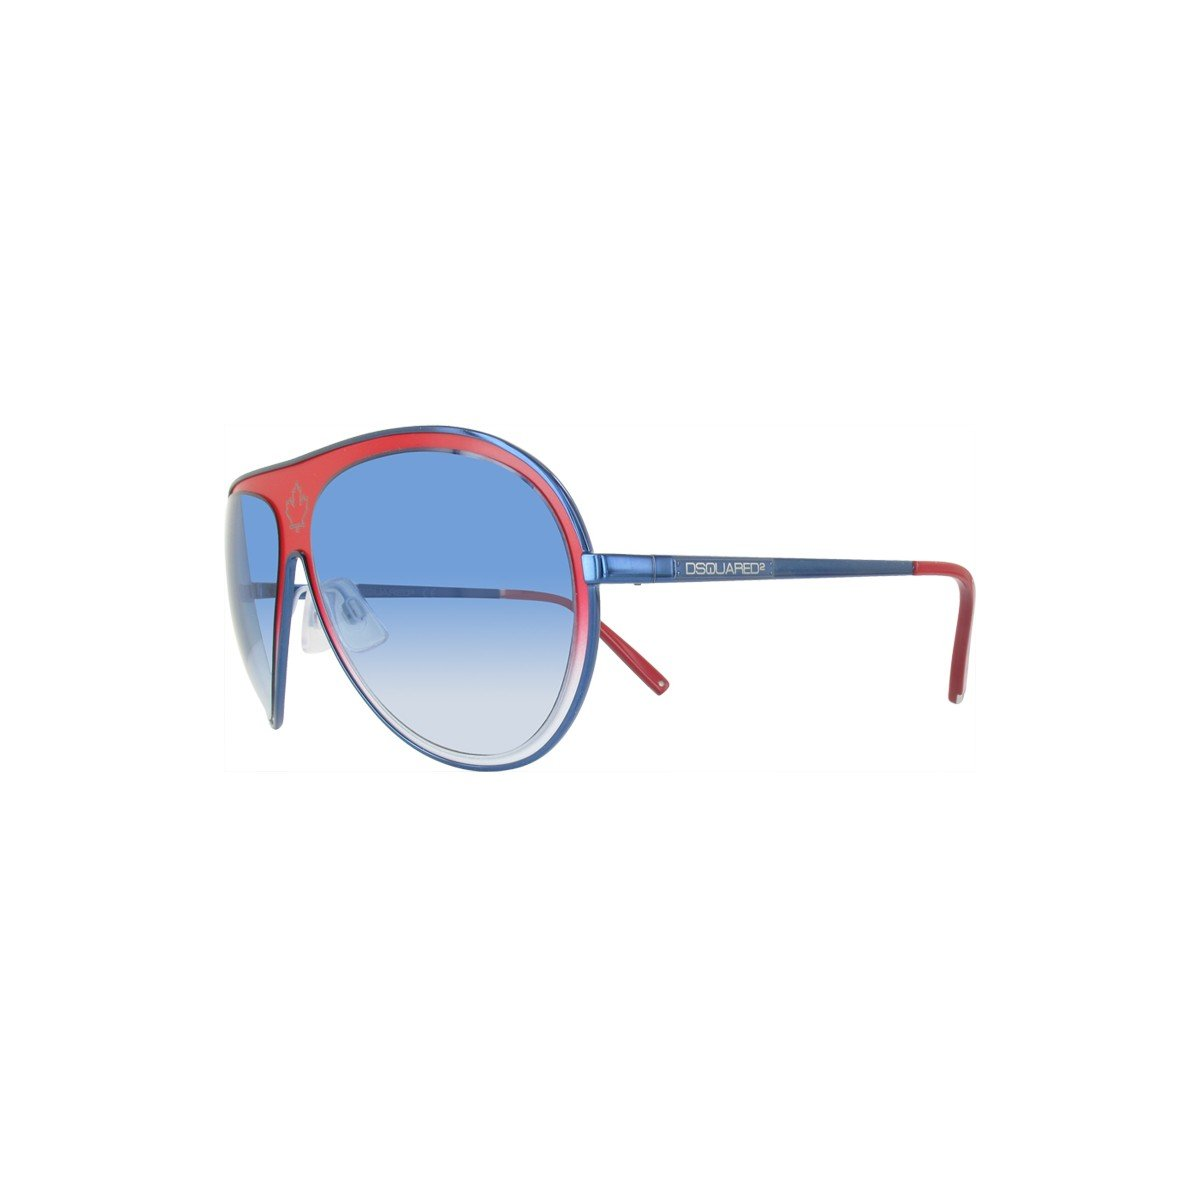 0124713659dc Dsquared2 DQ0104/S Unisex Blue and Red Sunglasses - MIMO DEALS